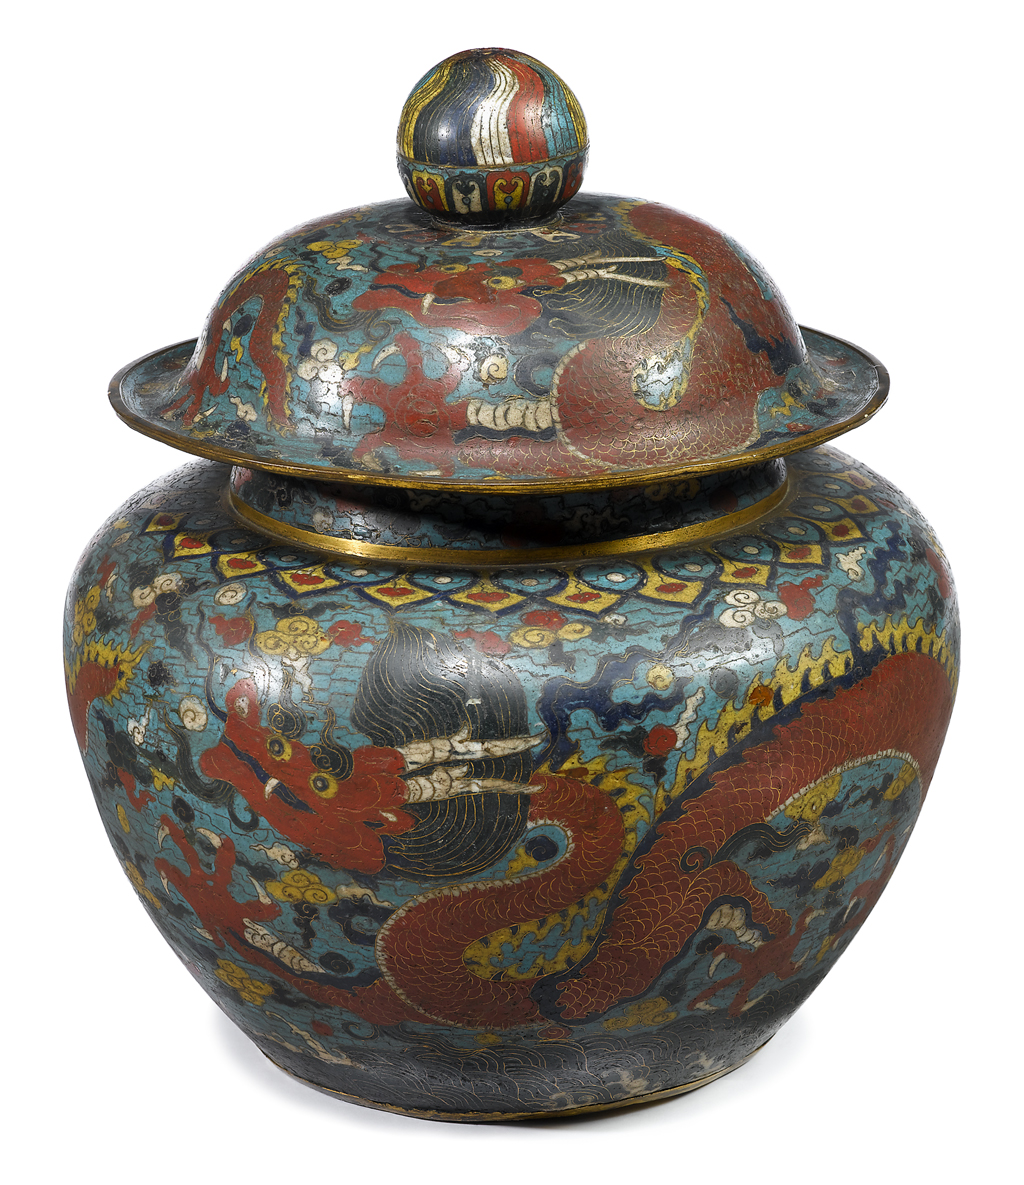 Lot 439 - Massive and Highly Important Chinese gilt bronze and cloisonne covered jar